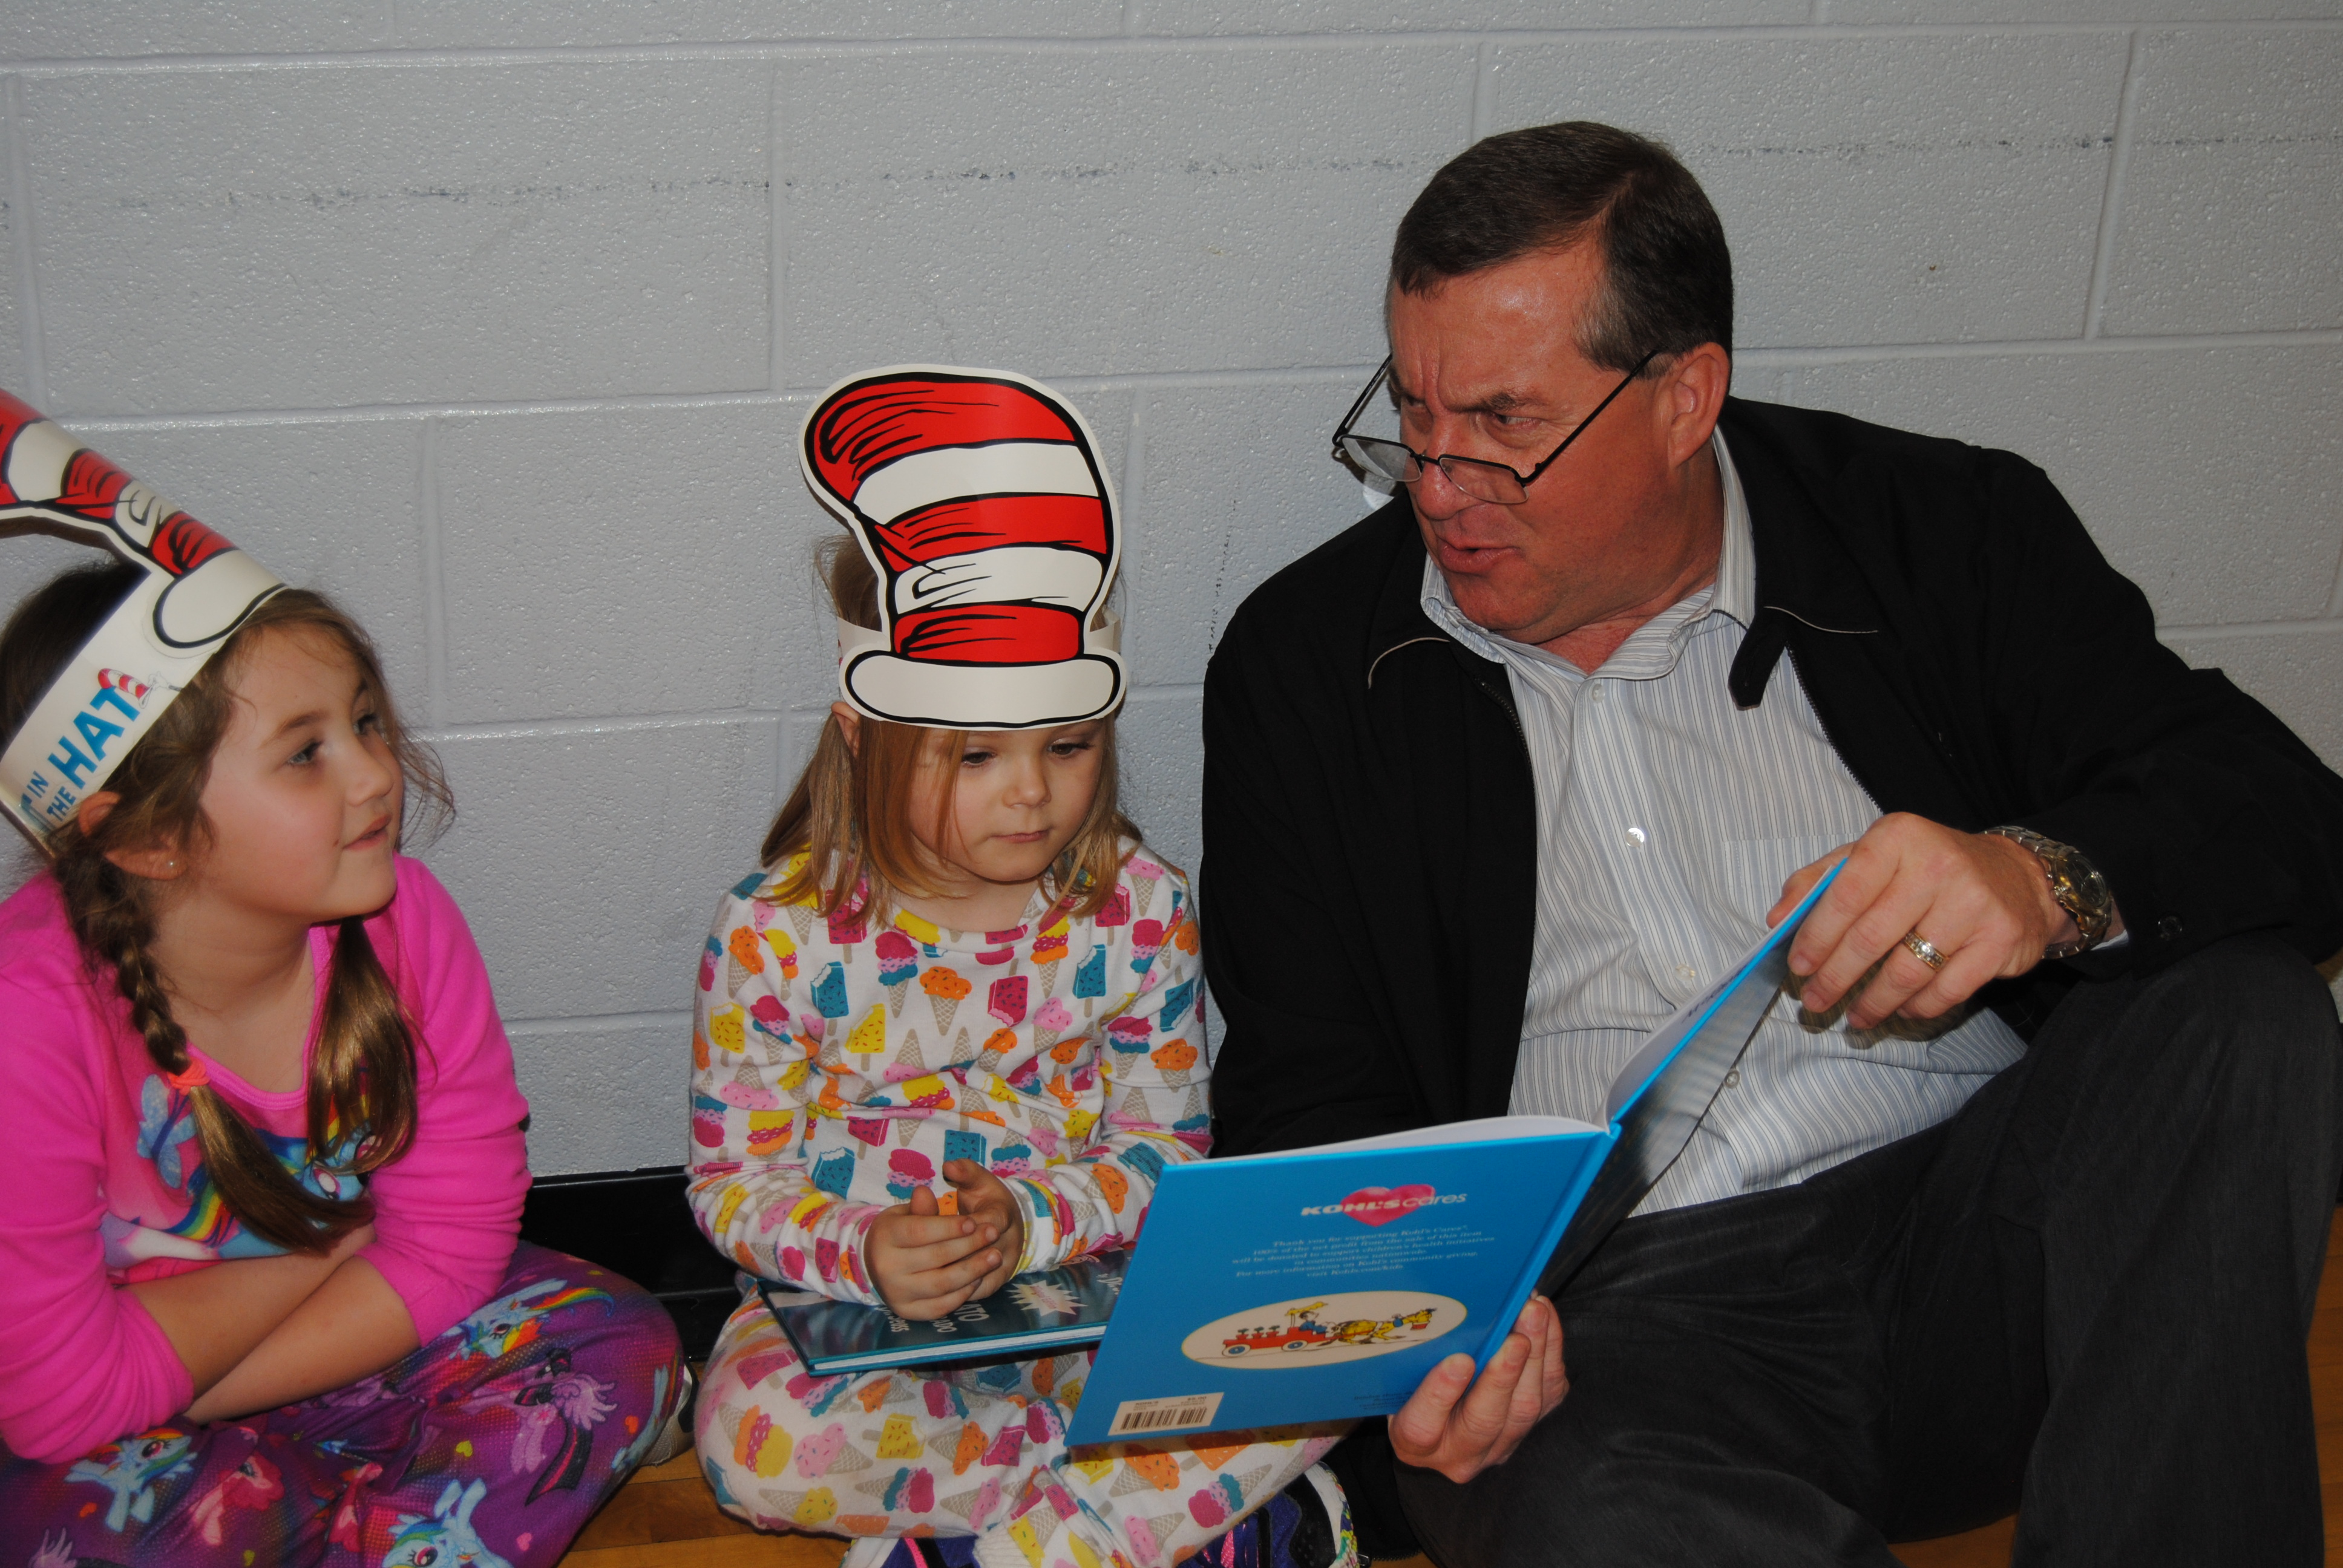 Superintendent Mr. Helton reads to NME students